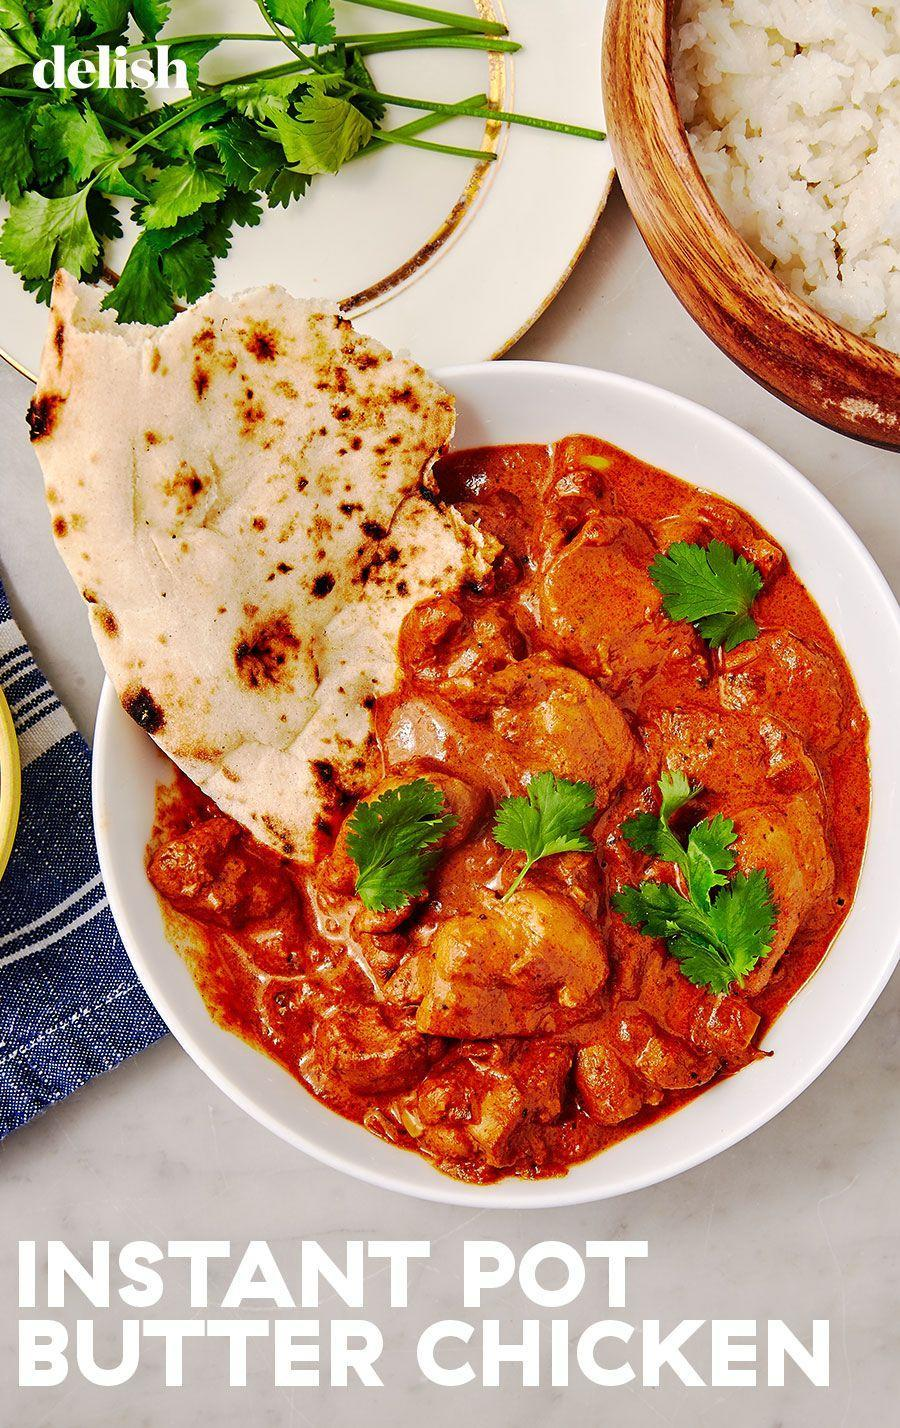 """<p>Make it faster than takeout.</p><p>Get the recipe from <a href=""""https://www.delish.com/cooking/recipe-ideas/a29859055/instant-pot-butter-chicken-recipe/"""" rel=""""nofollow noopener"""" target=""""_blank"""" data-ylk=""""slk:Delish"""" class=""""link rapid-noclick-resp"""">Delish</a>.</p>"""